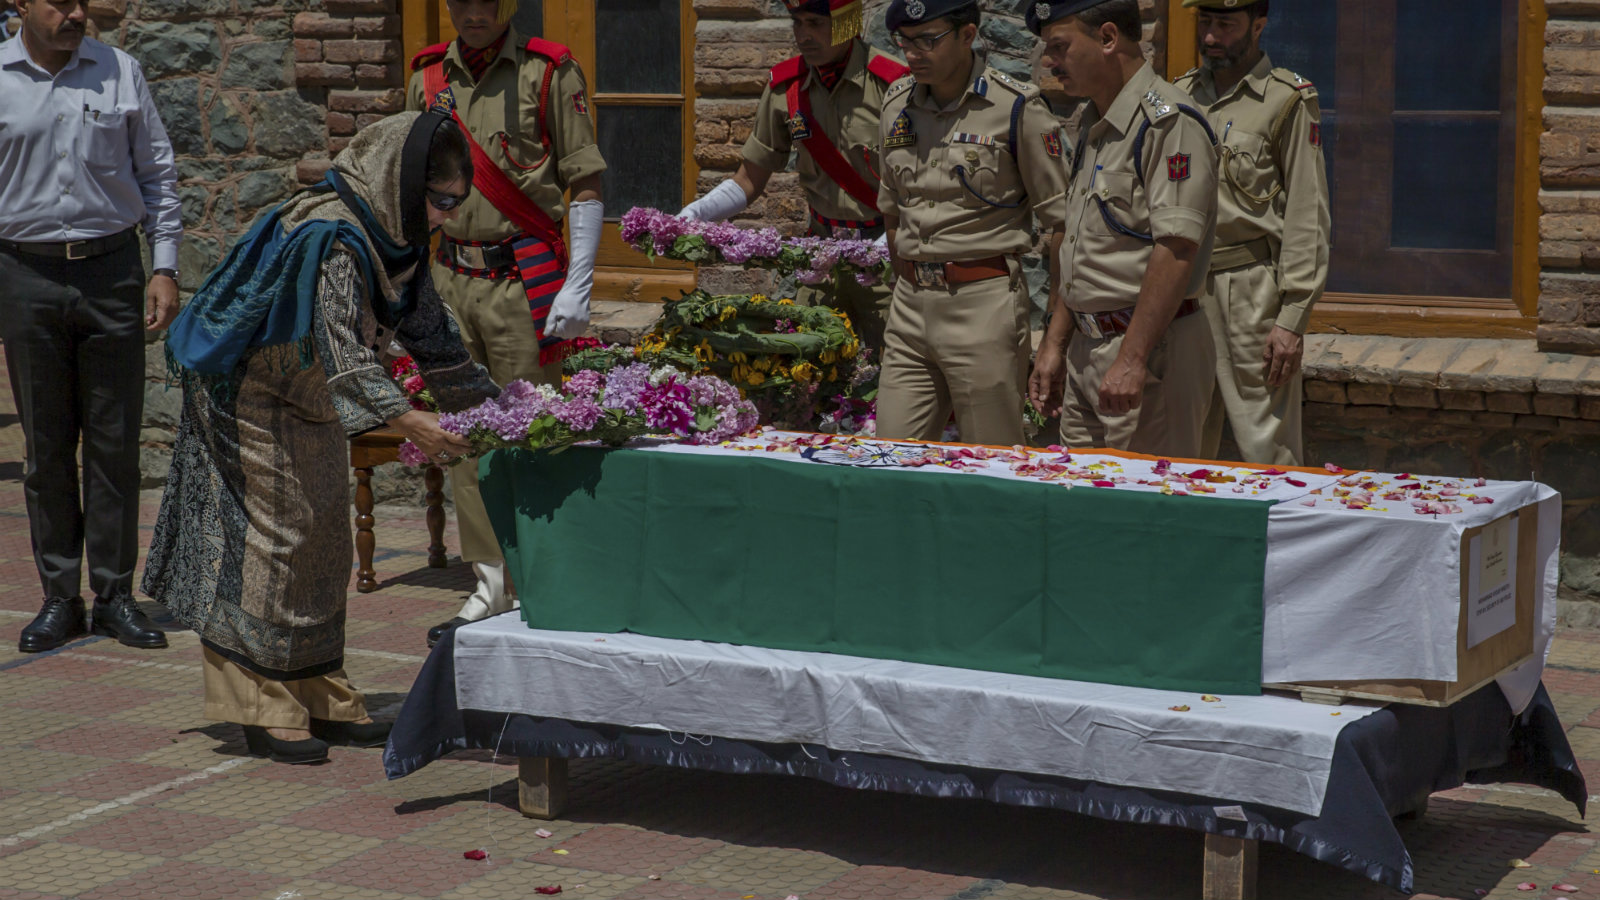 Jammu & Kashmir chief minister Mehbooba Mufti places a wreath on the coffin of Mohammad Ayub Pandit, a policeman beaten to death by a Kashmiri mob, on June 23, 2017.